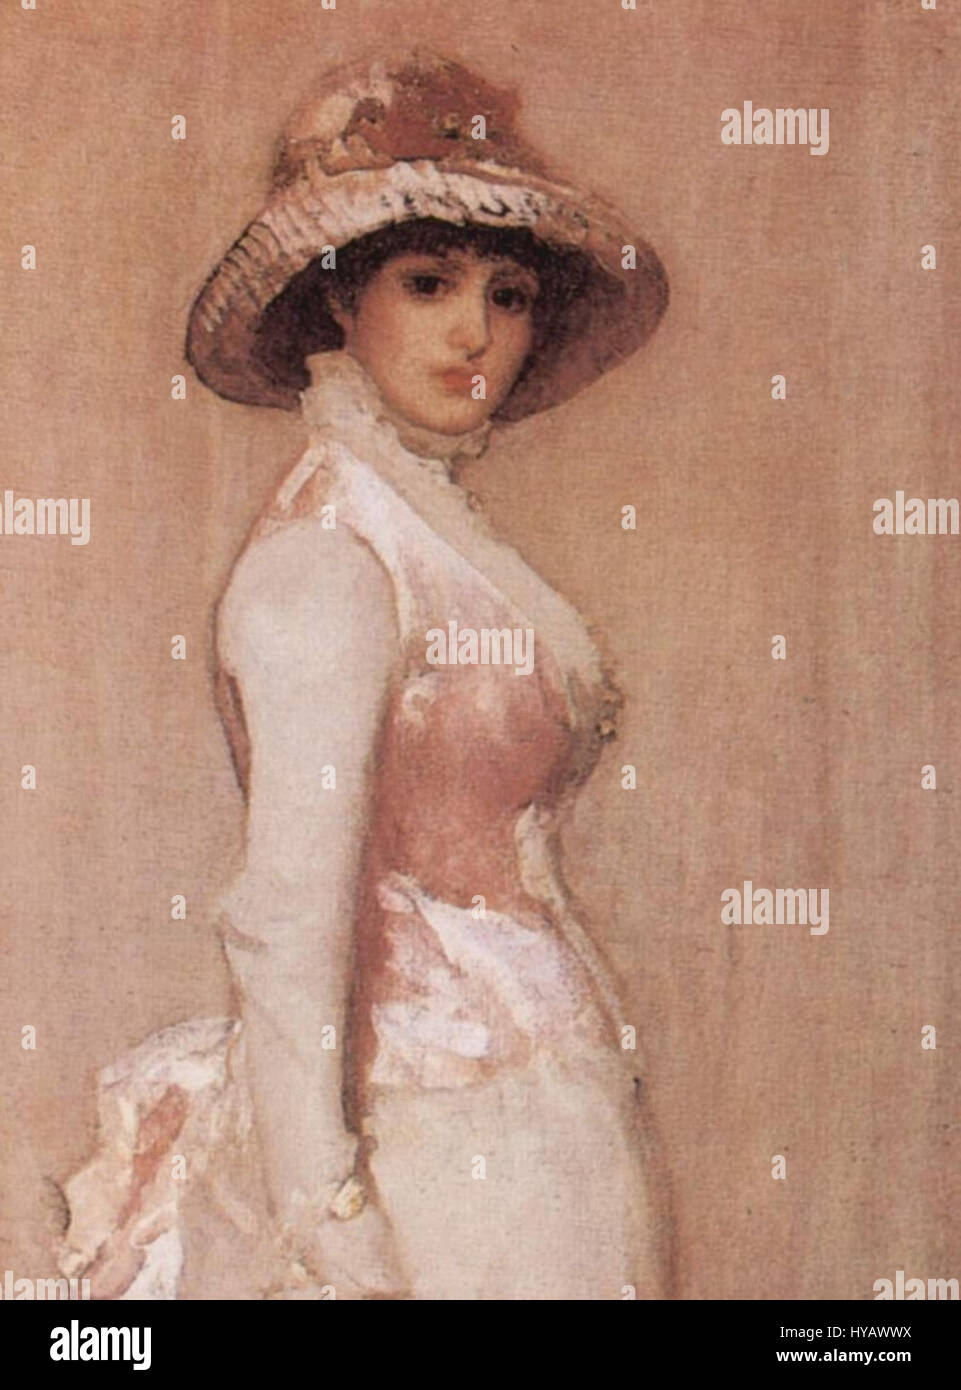 James Abbot McNeill Whistler 011a - Stock Image